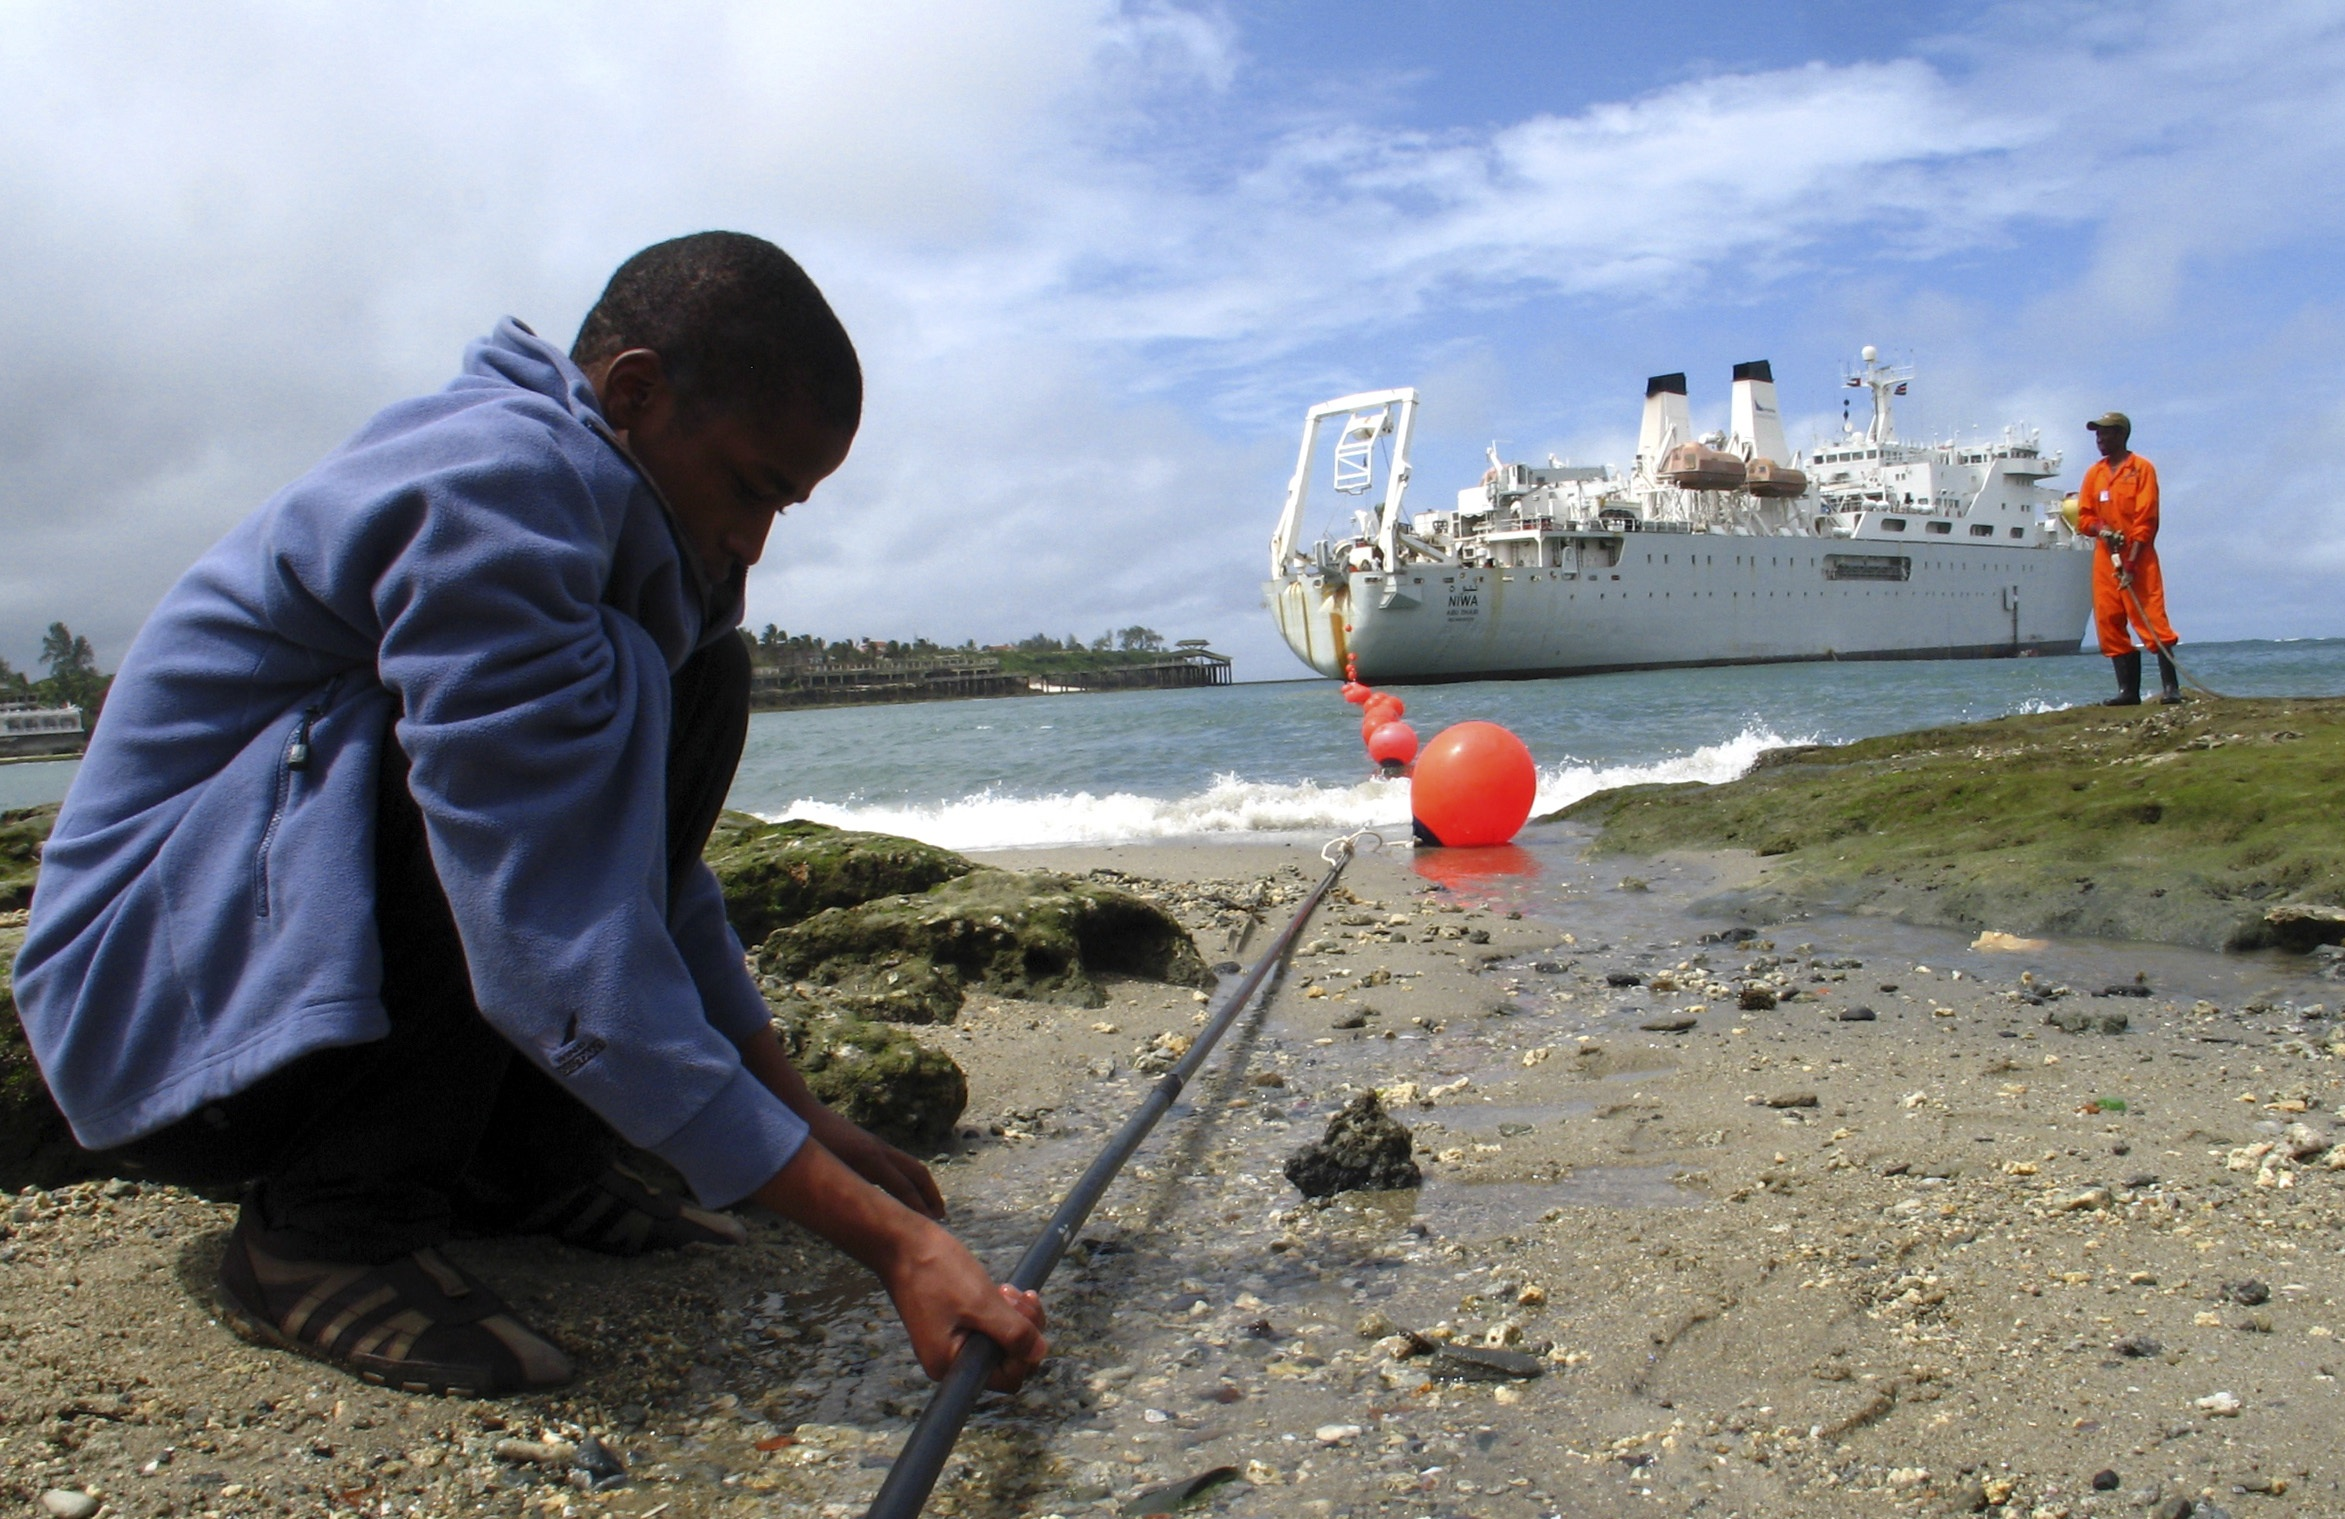 Kenyan boy looks at TEAMS fiber optic cable from the ship Niwa on the Fort Jesus shore-end in the coastal city of Mombasa